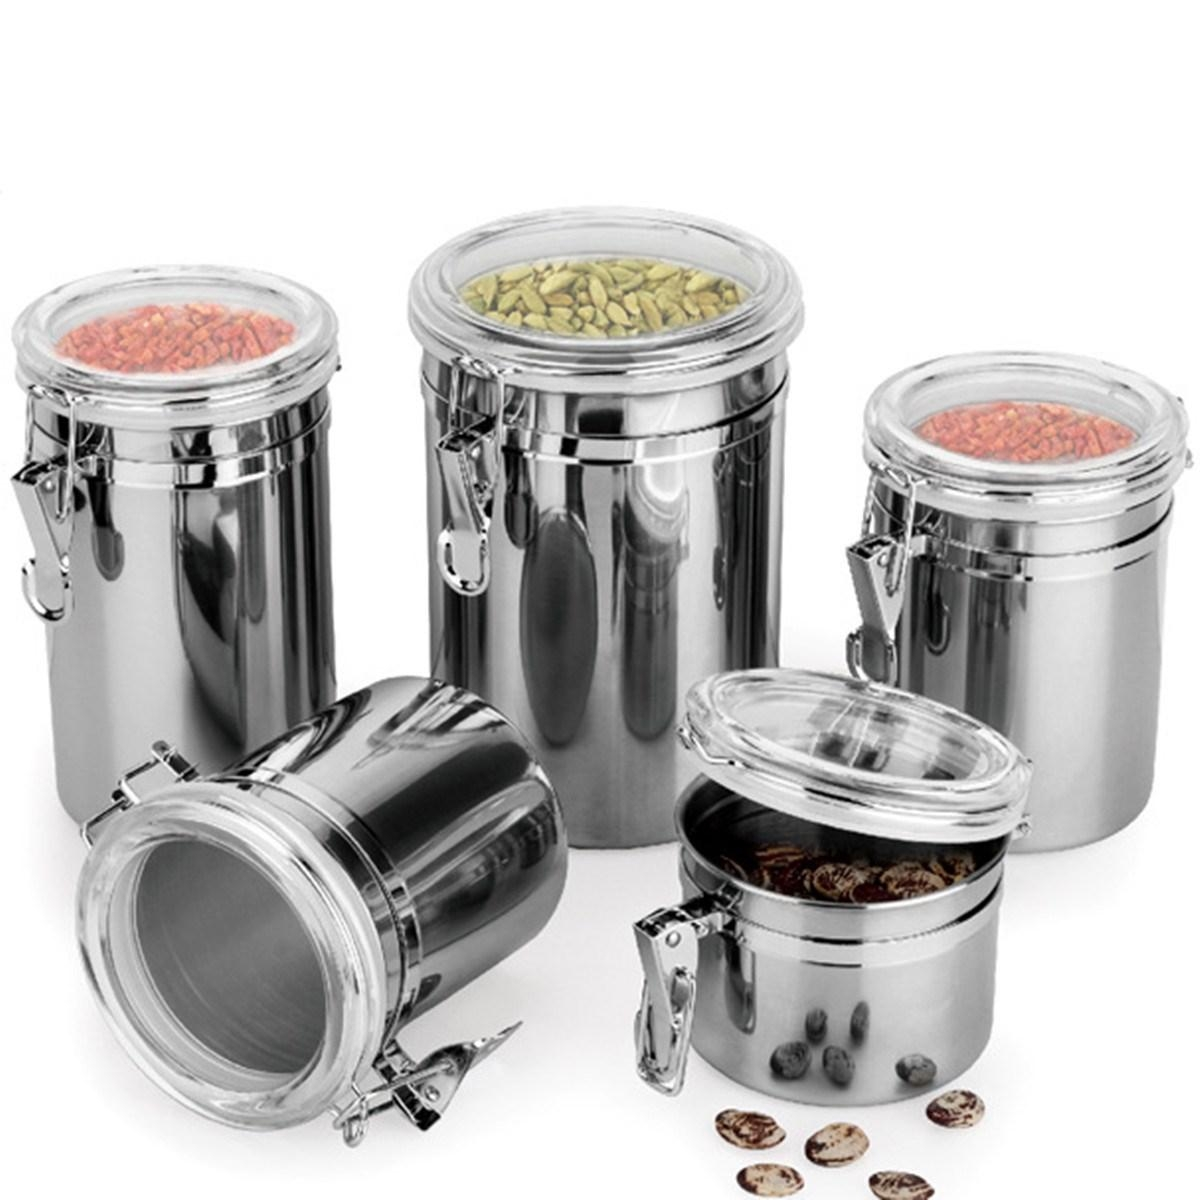 Silver Kitchen Storage Set